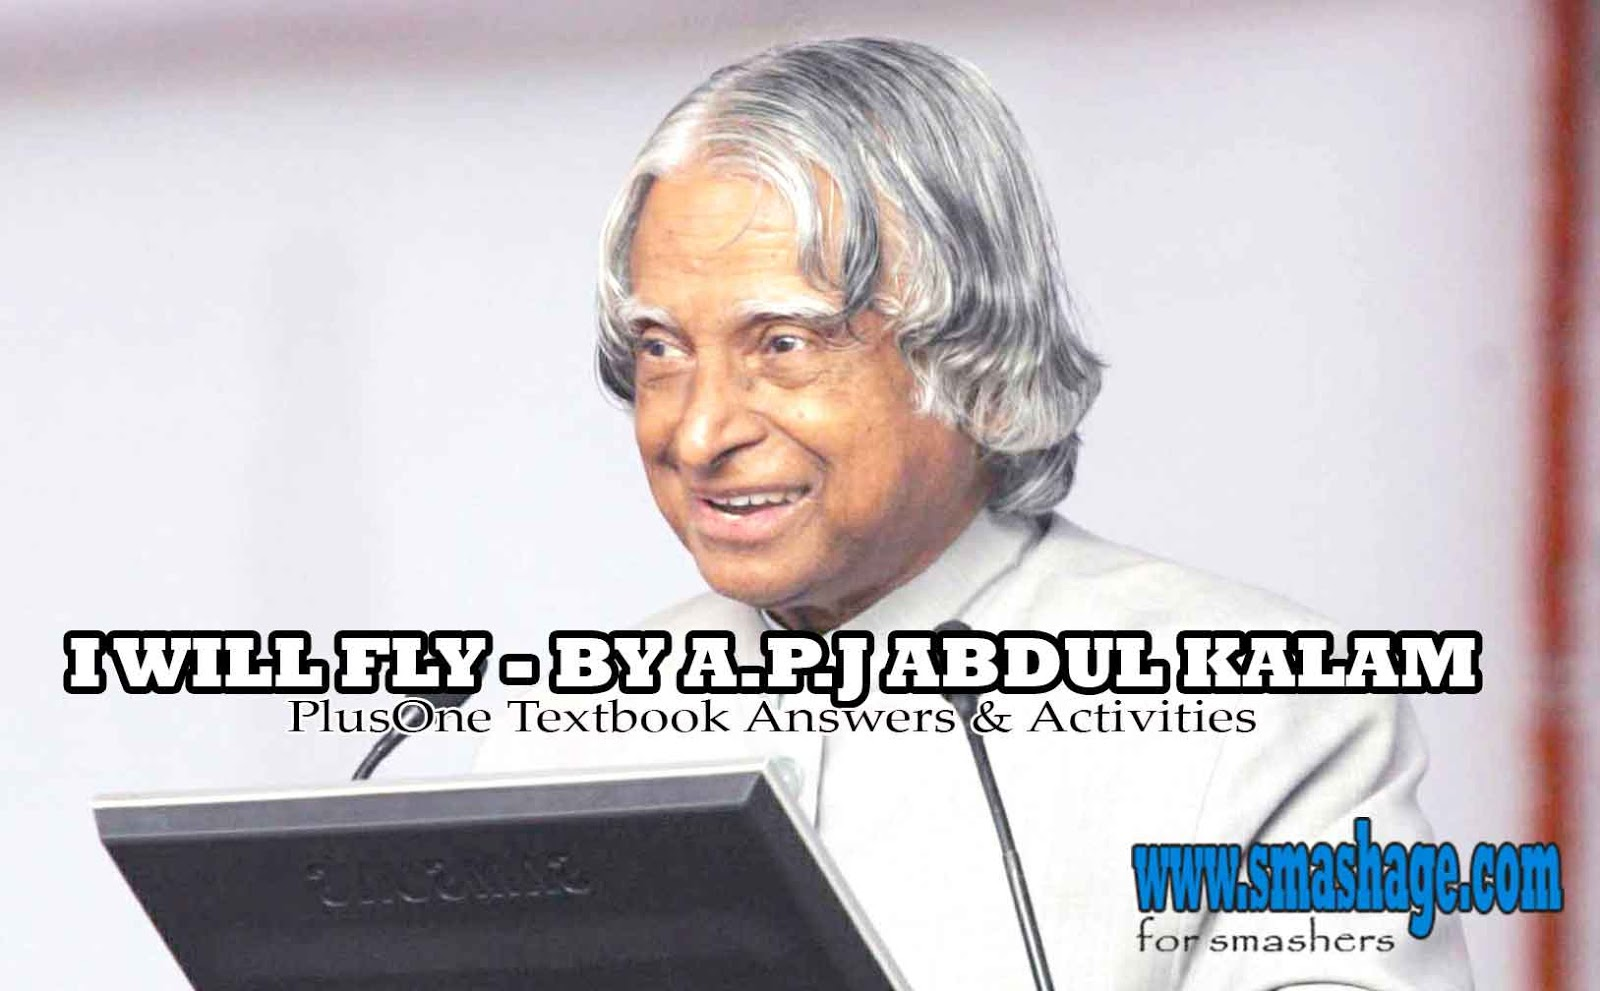 essays my role model apj abdul kalam com essays my role model apj abdul kalam